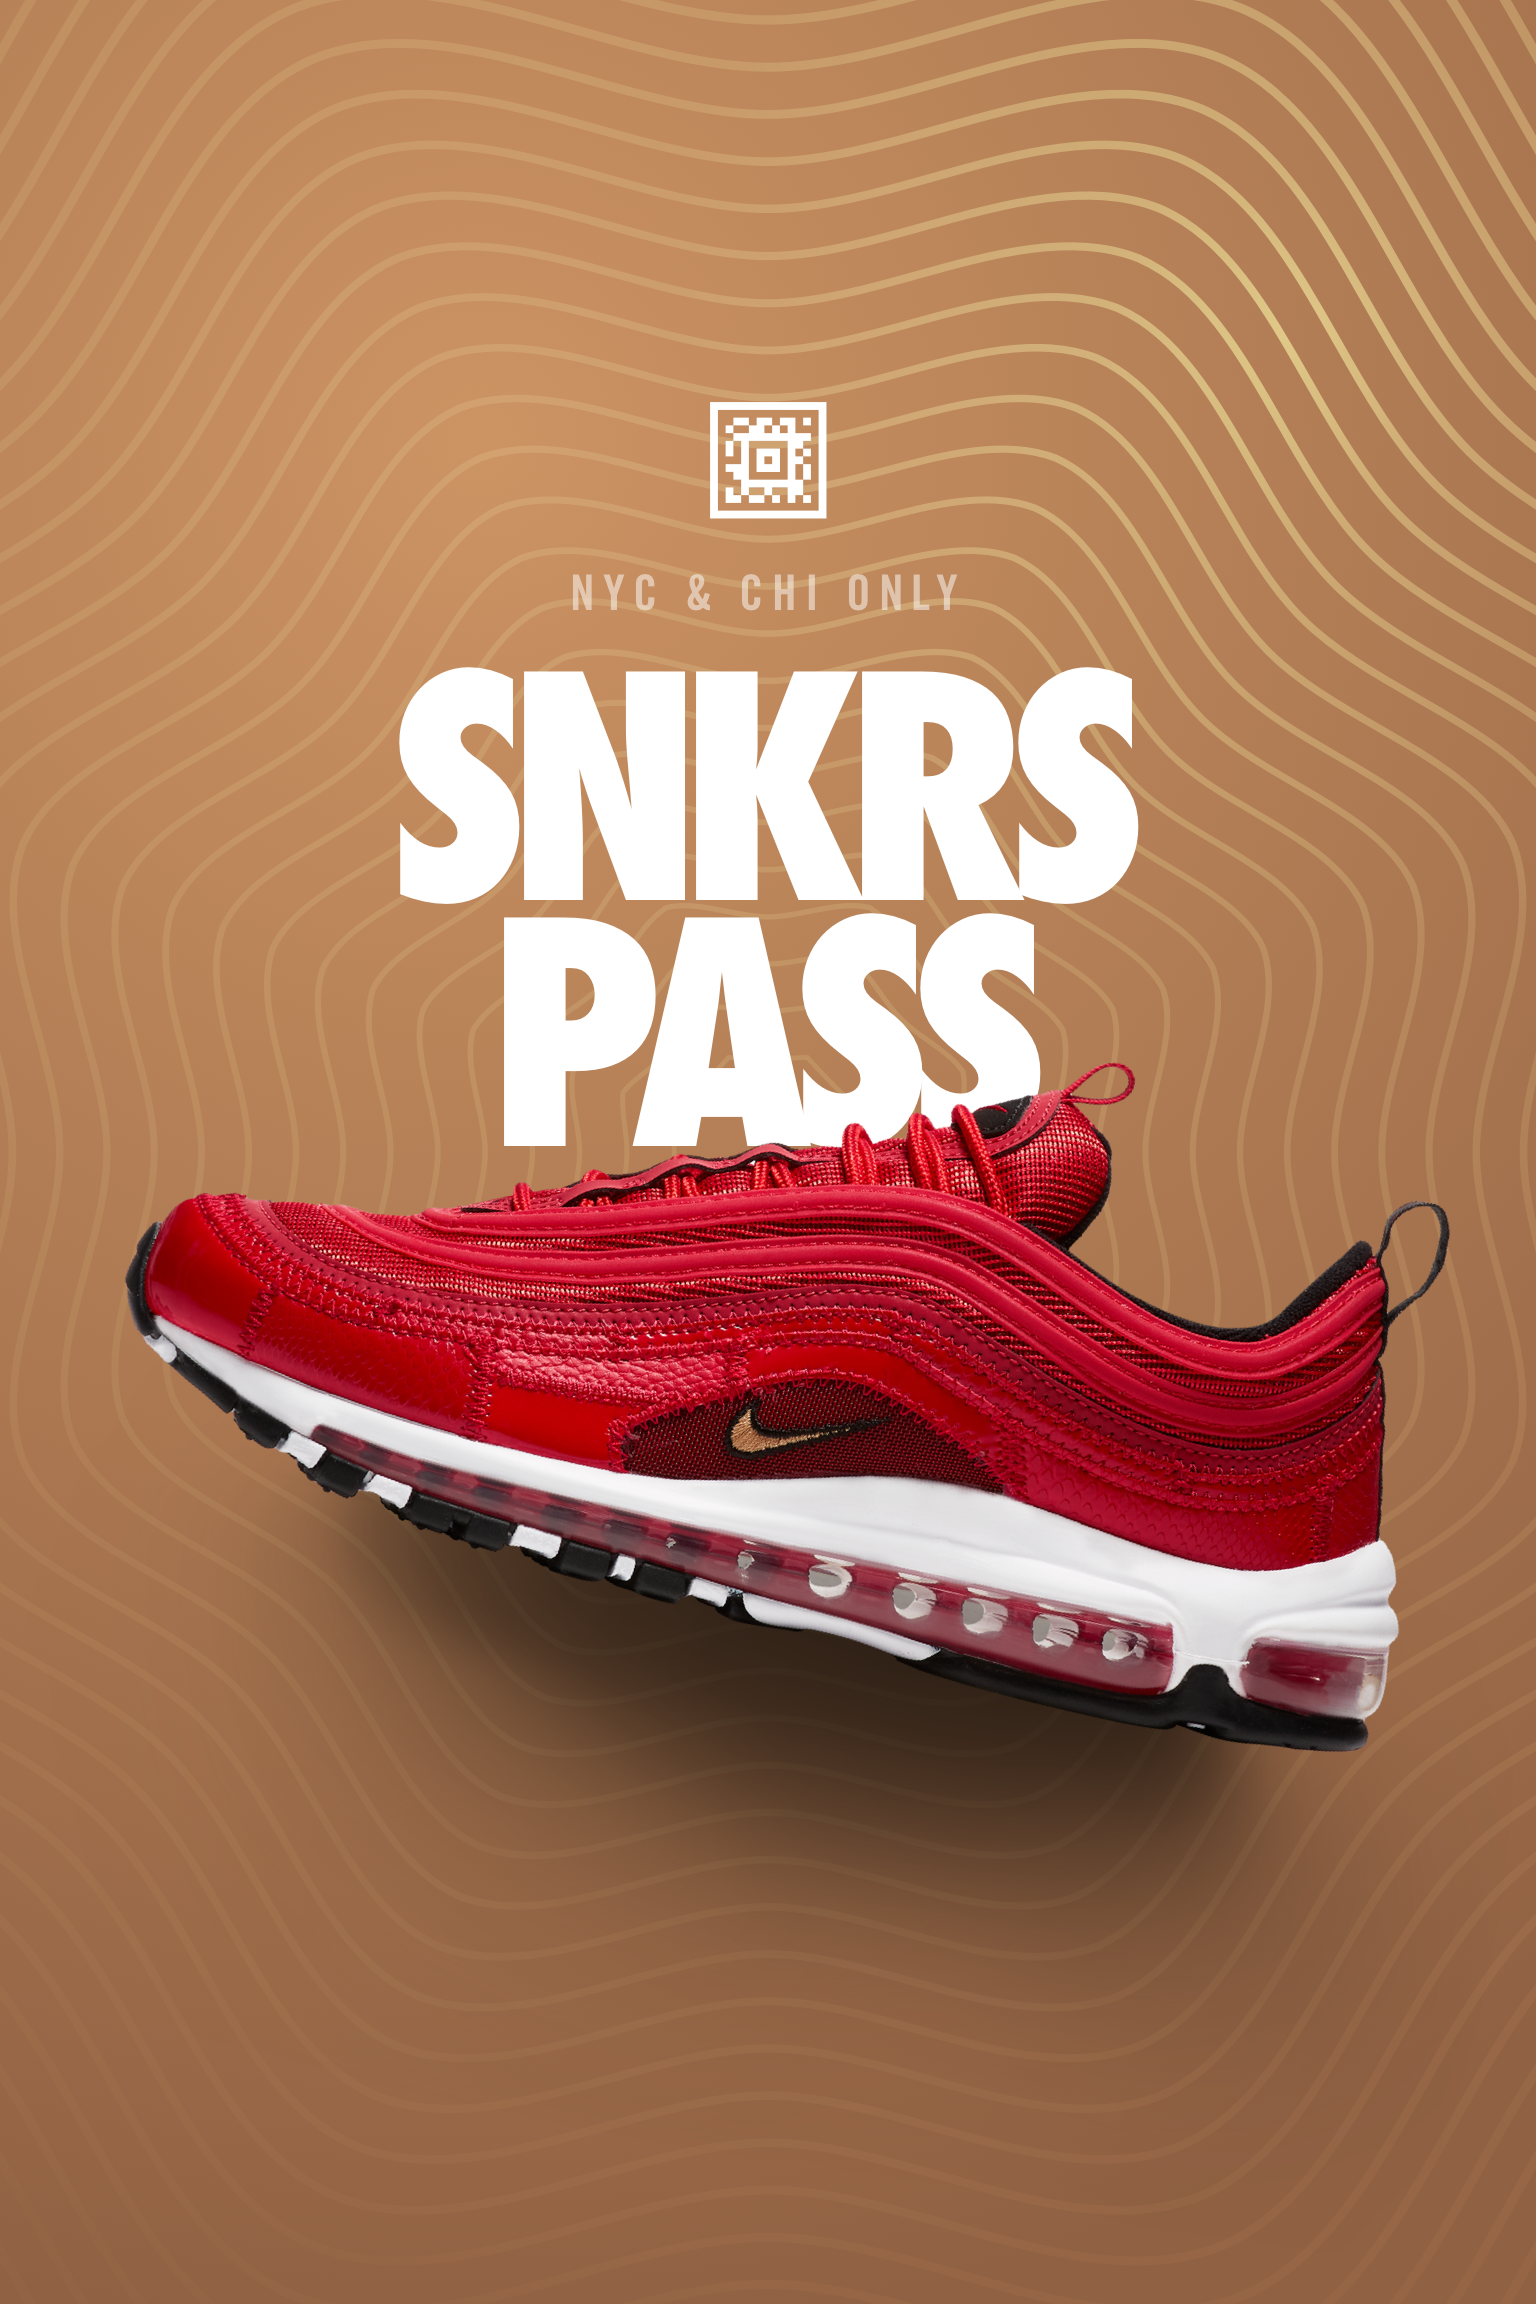 Nike Air Max 97 CR7 'Portugal Patchwork' SNKRS Pass NYC & Chicago ...